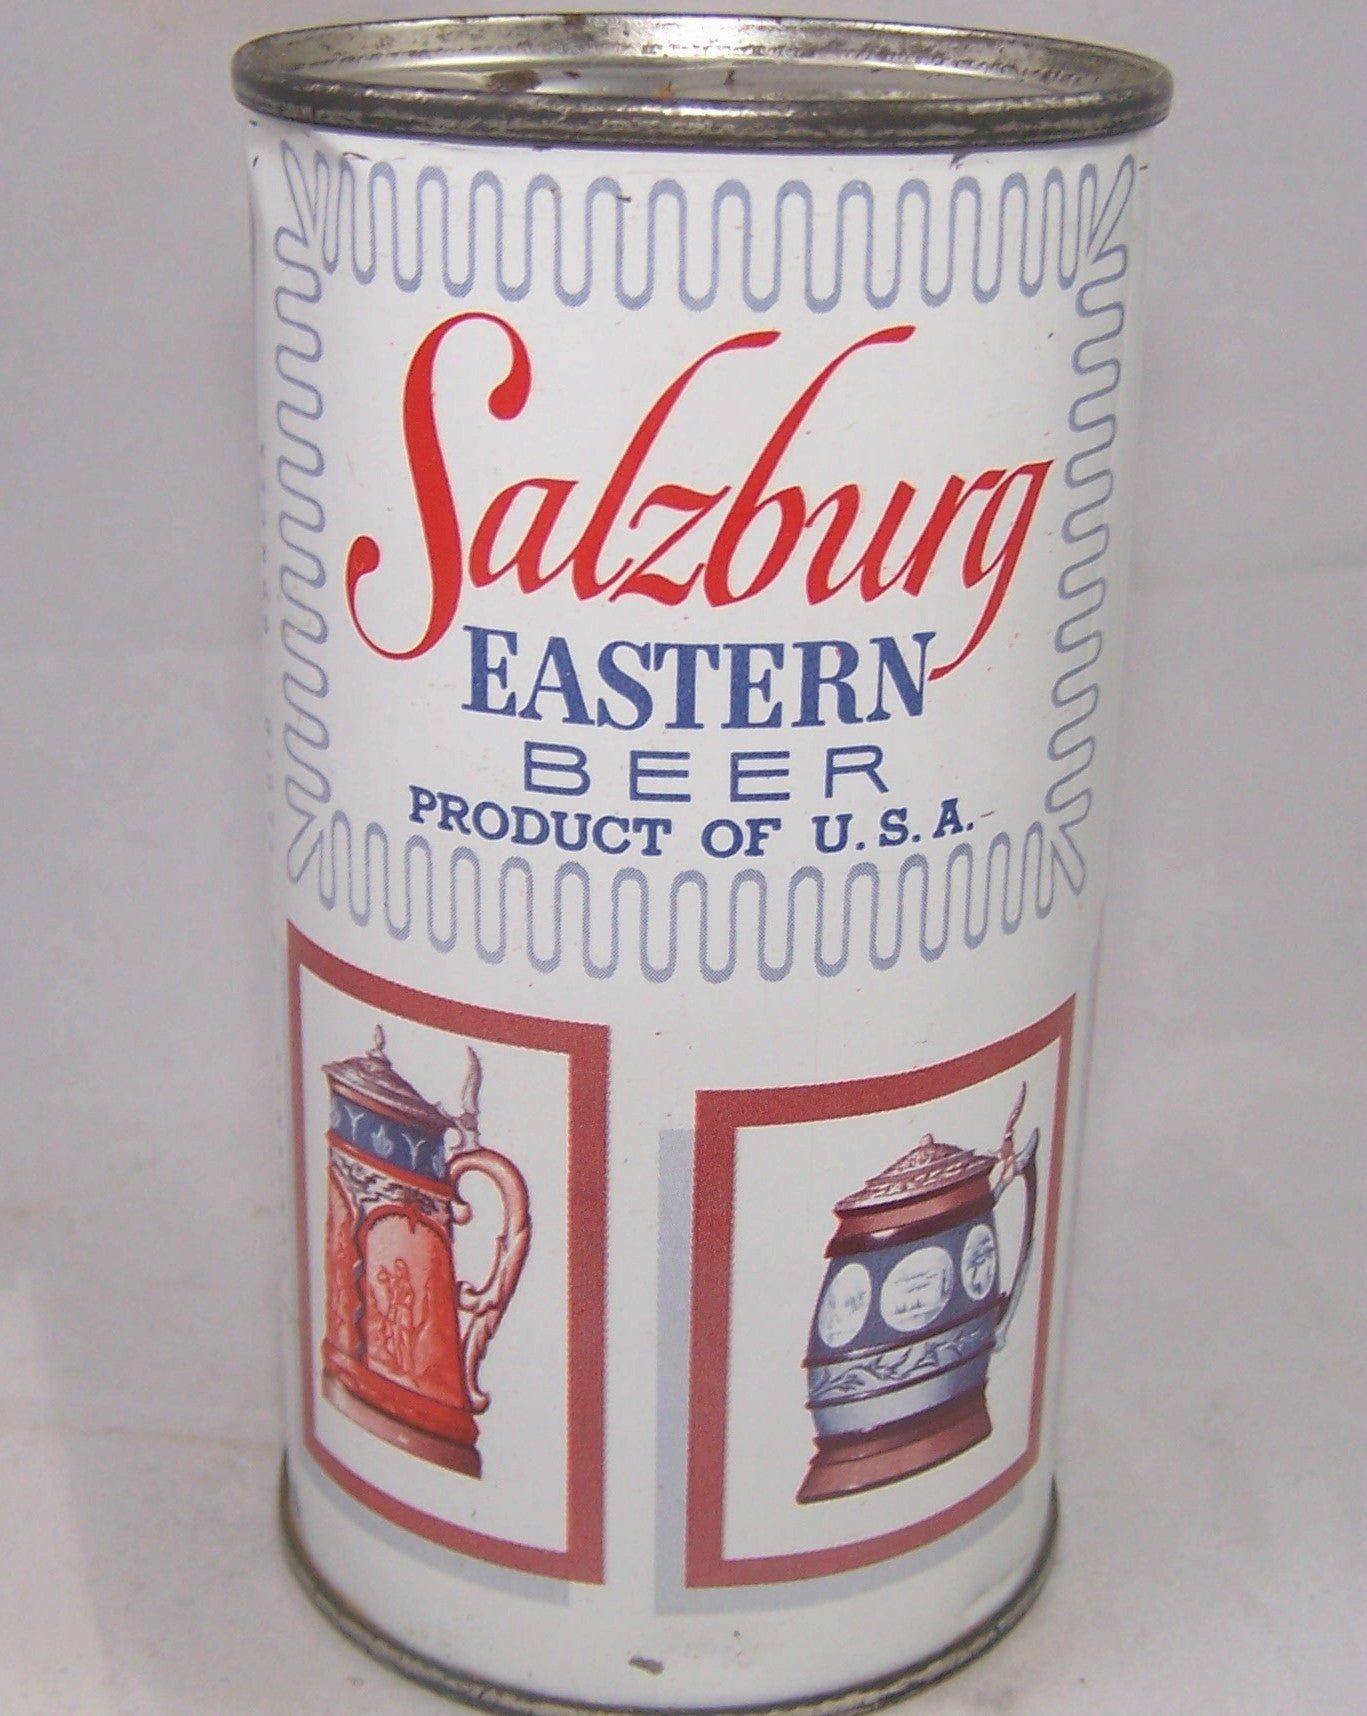 Salzburg Eastern Beer, USBC 127-09, Grade 1/1+ Sold on 10/02/16